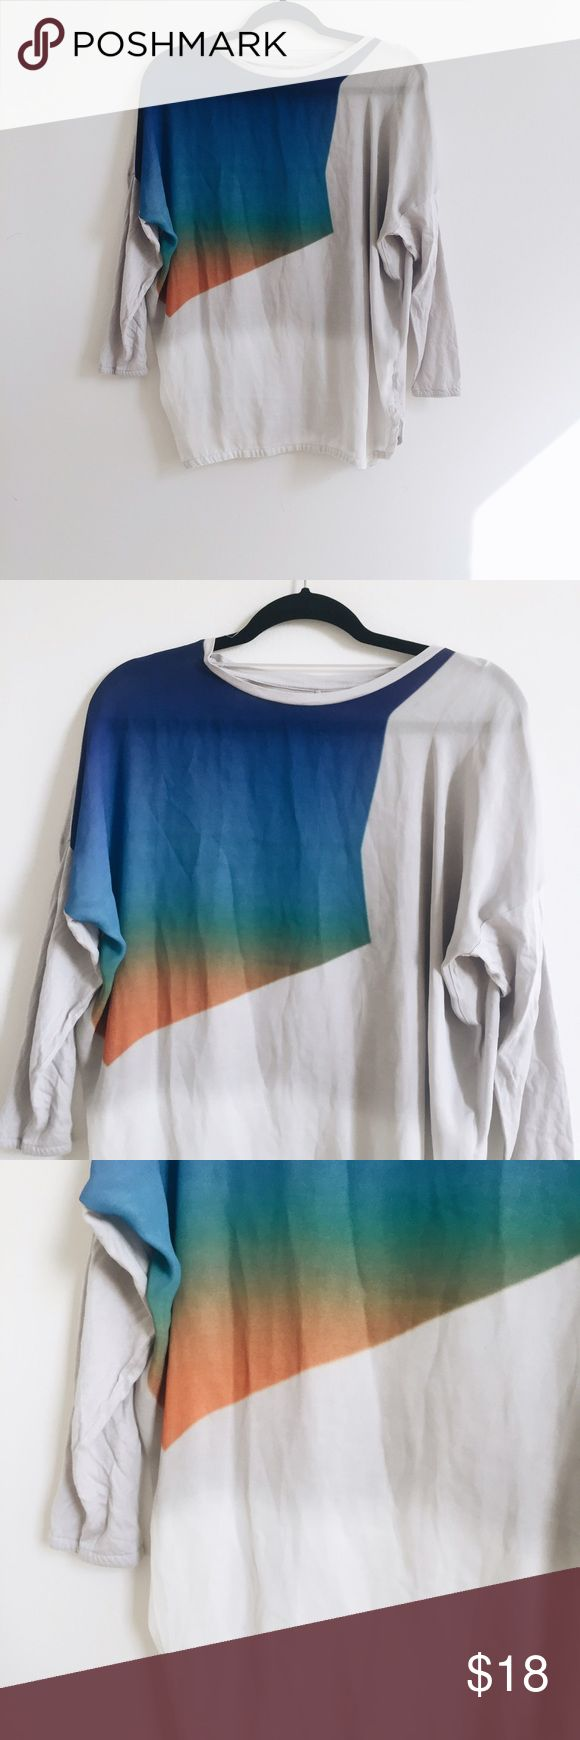 ✨DISCOUNTED✨Sheer Gradient Multi-Coloured Top✨🍉🌴 Never been worn. NWOT. Lightweight colourful long sleeve top. Beautiful colour gradations across the front. Comfortable and loose for a casual fit :) 🔵⚪️🔶🍉🌺 Zara Tops